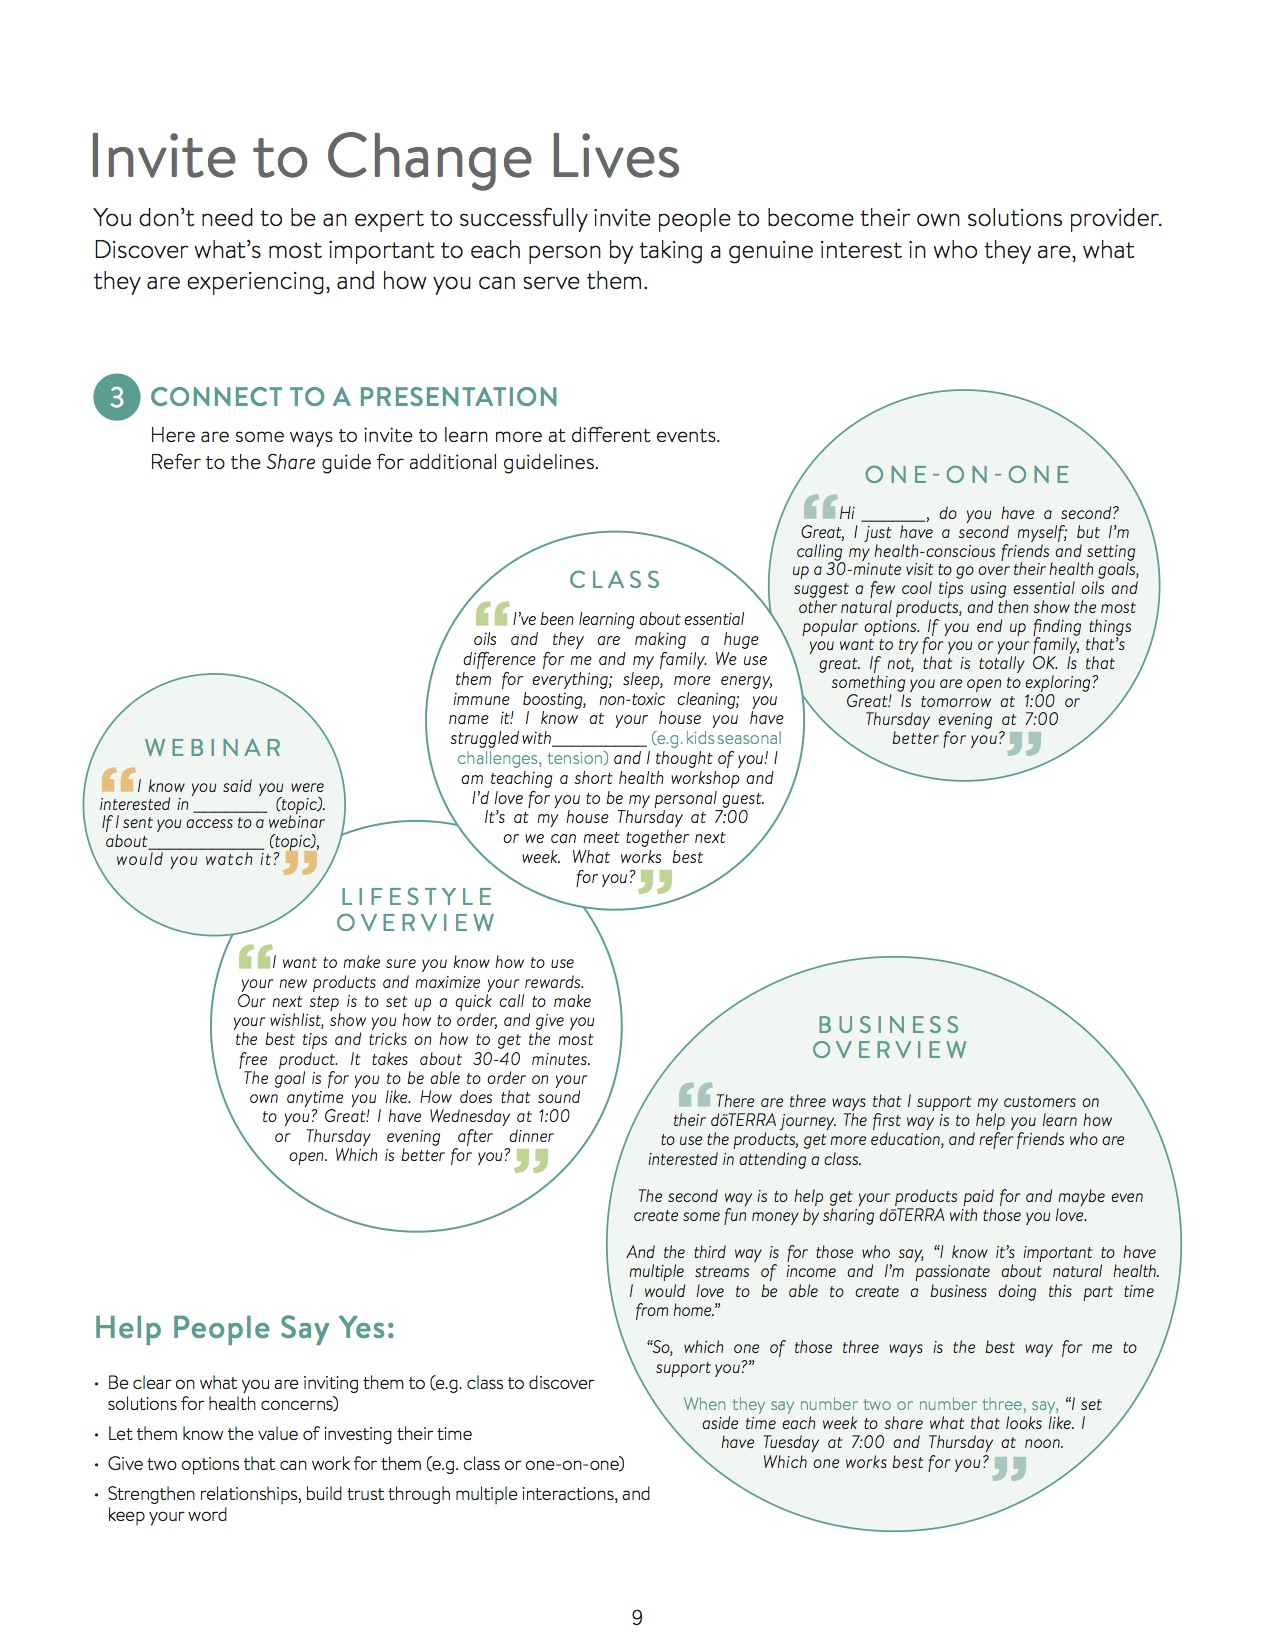 empowered-success-launch-guide 9.jpg